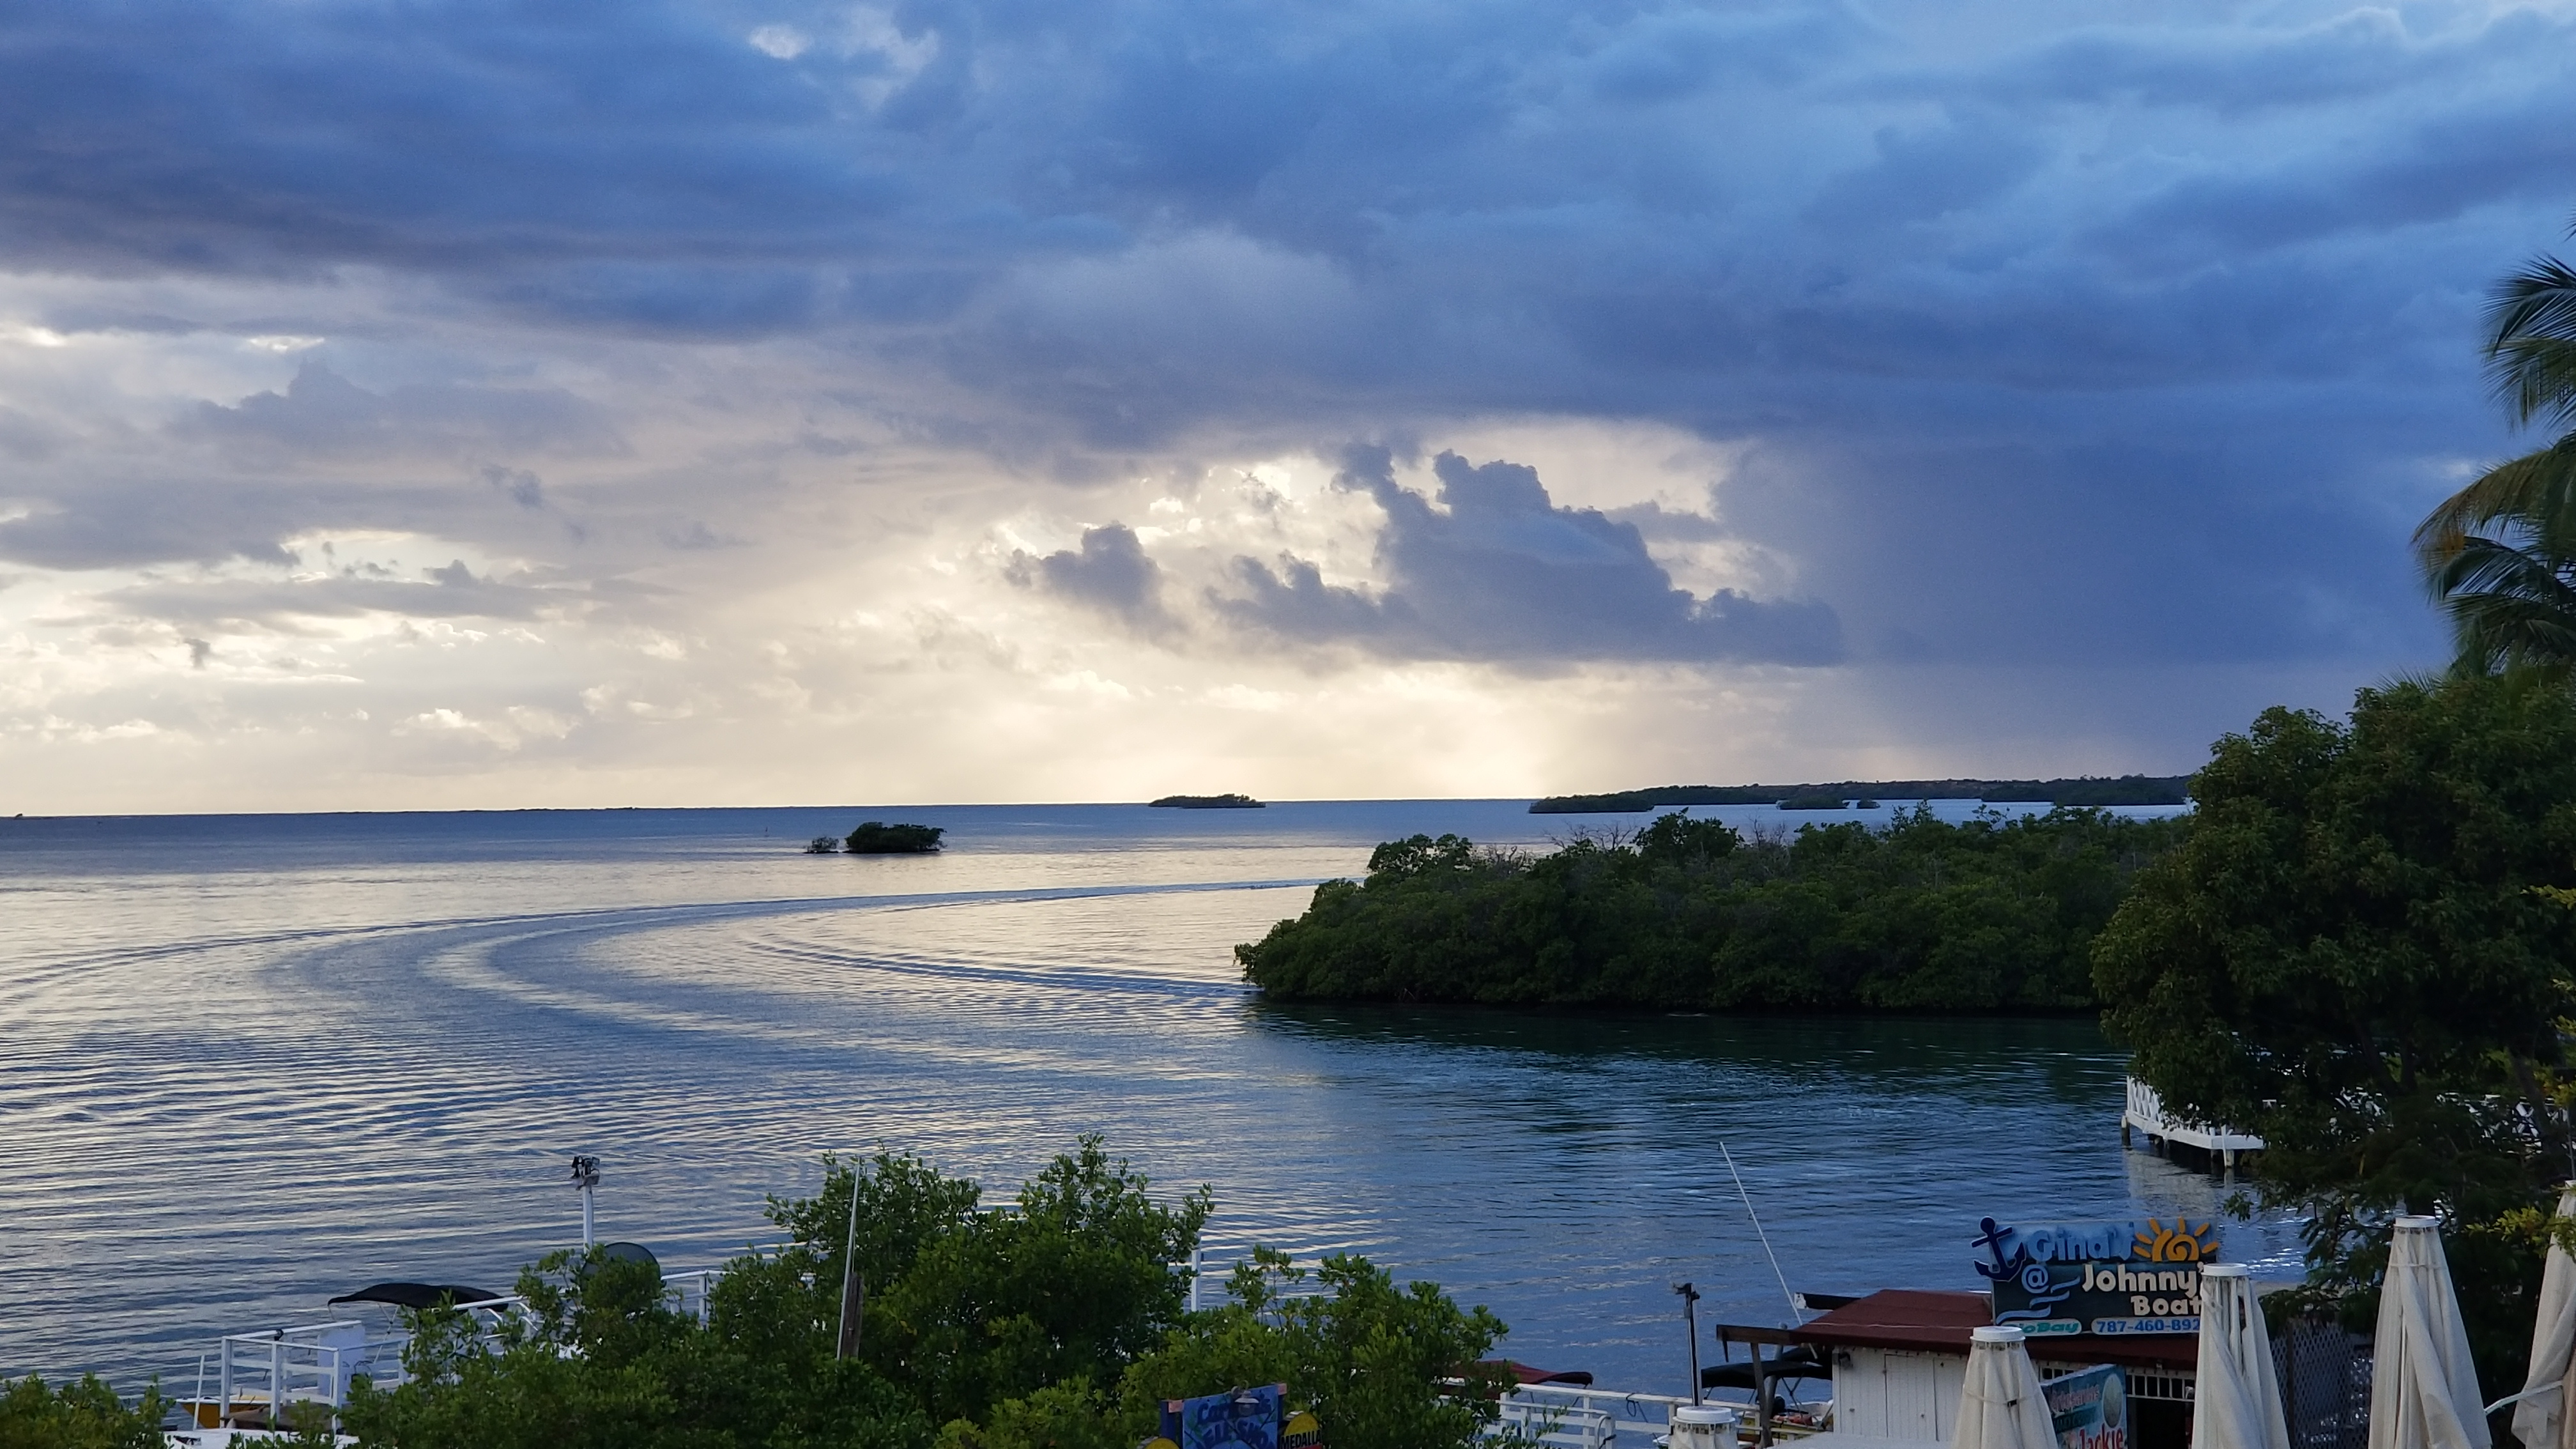 Bay in Puerto Rico under threatening skies